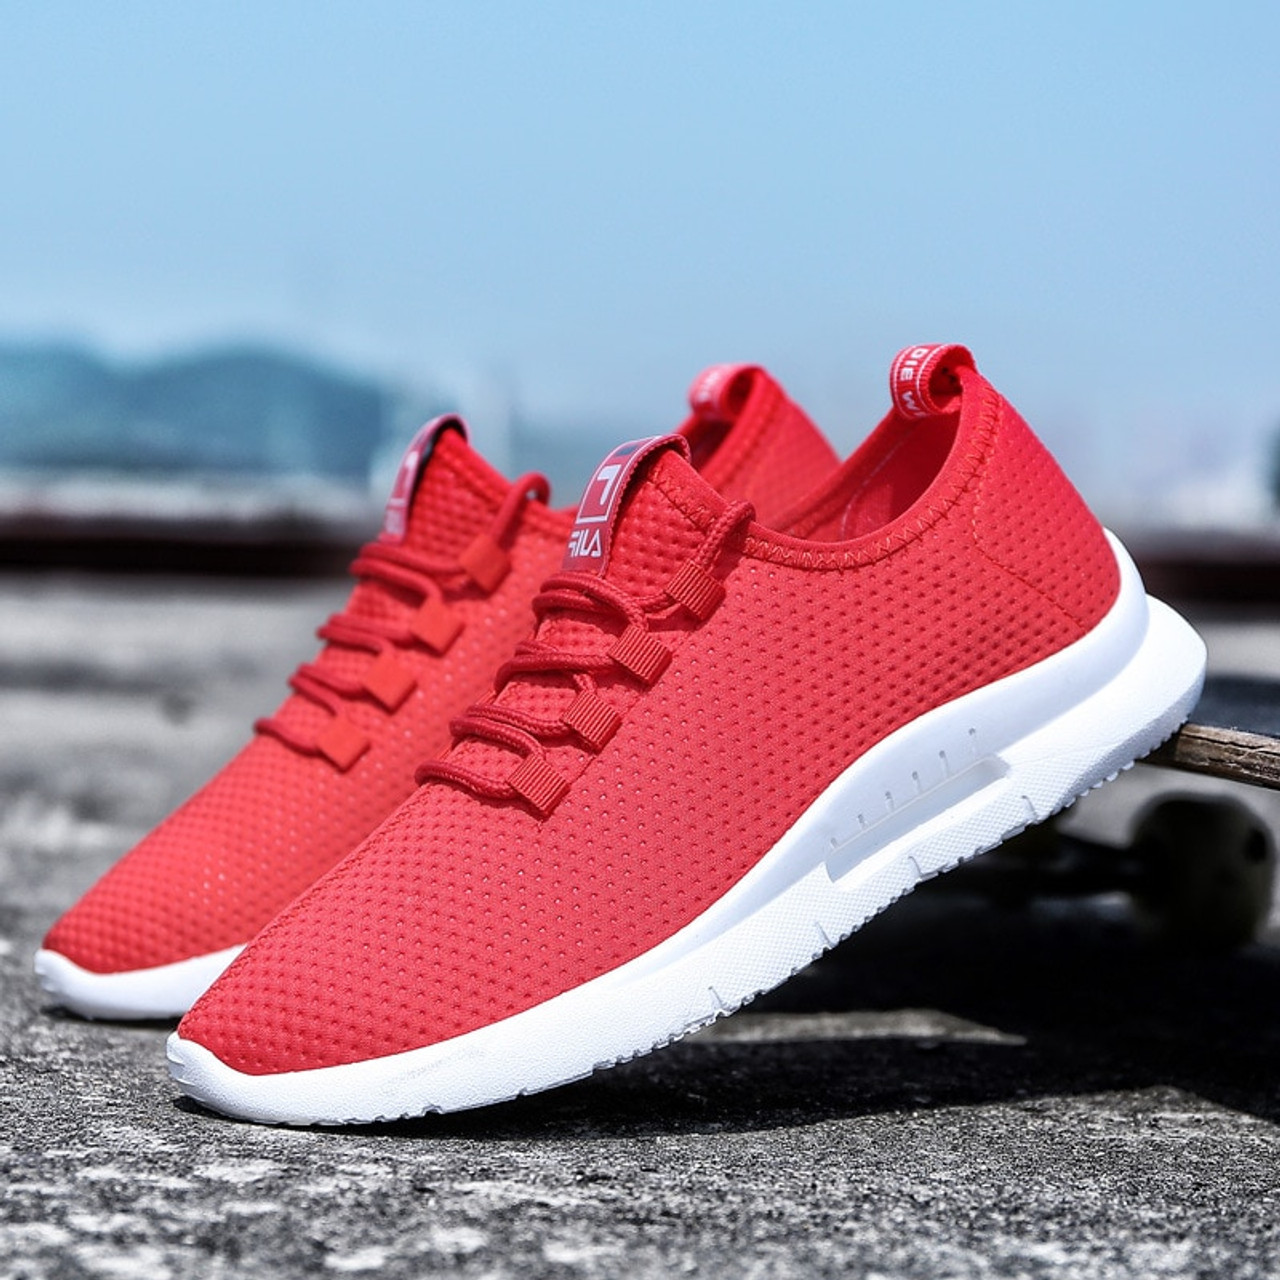 24ea1a0f58d0 ... 2018 Spring And Autumn Classic New Men S Shoes Low-Cut Casual  Flyweather Men S Fashion Low